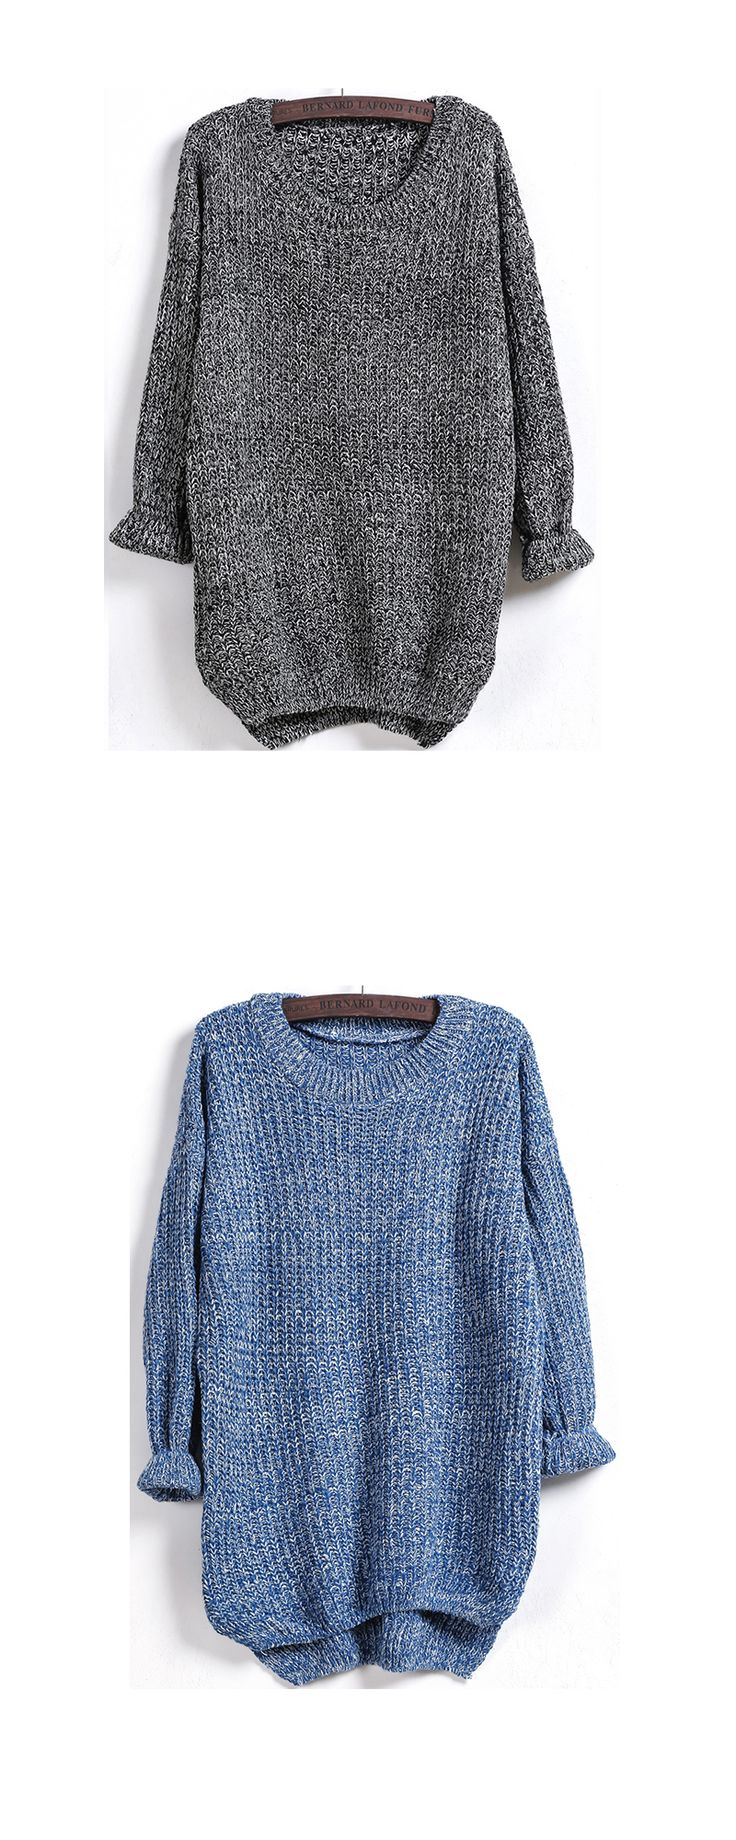 Super cozy fashion !This loose pullover sweater is my closet stable . Always be casual and style with dip hem design !